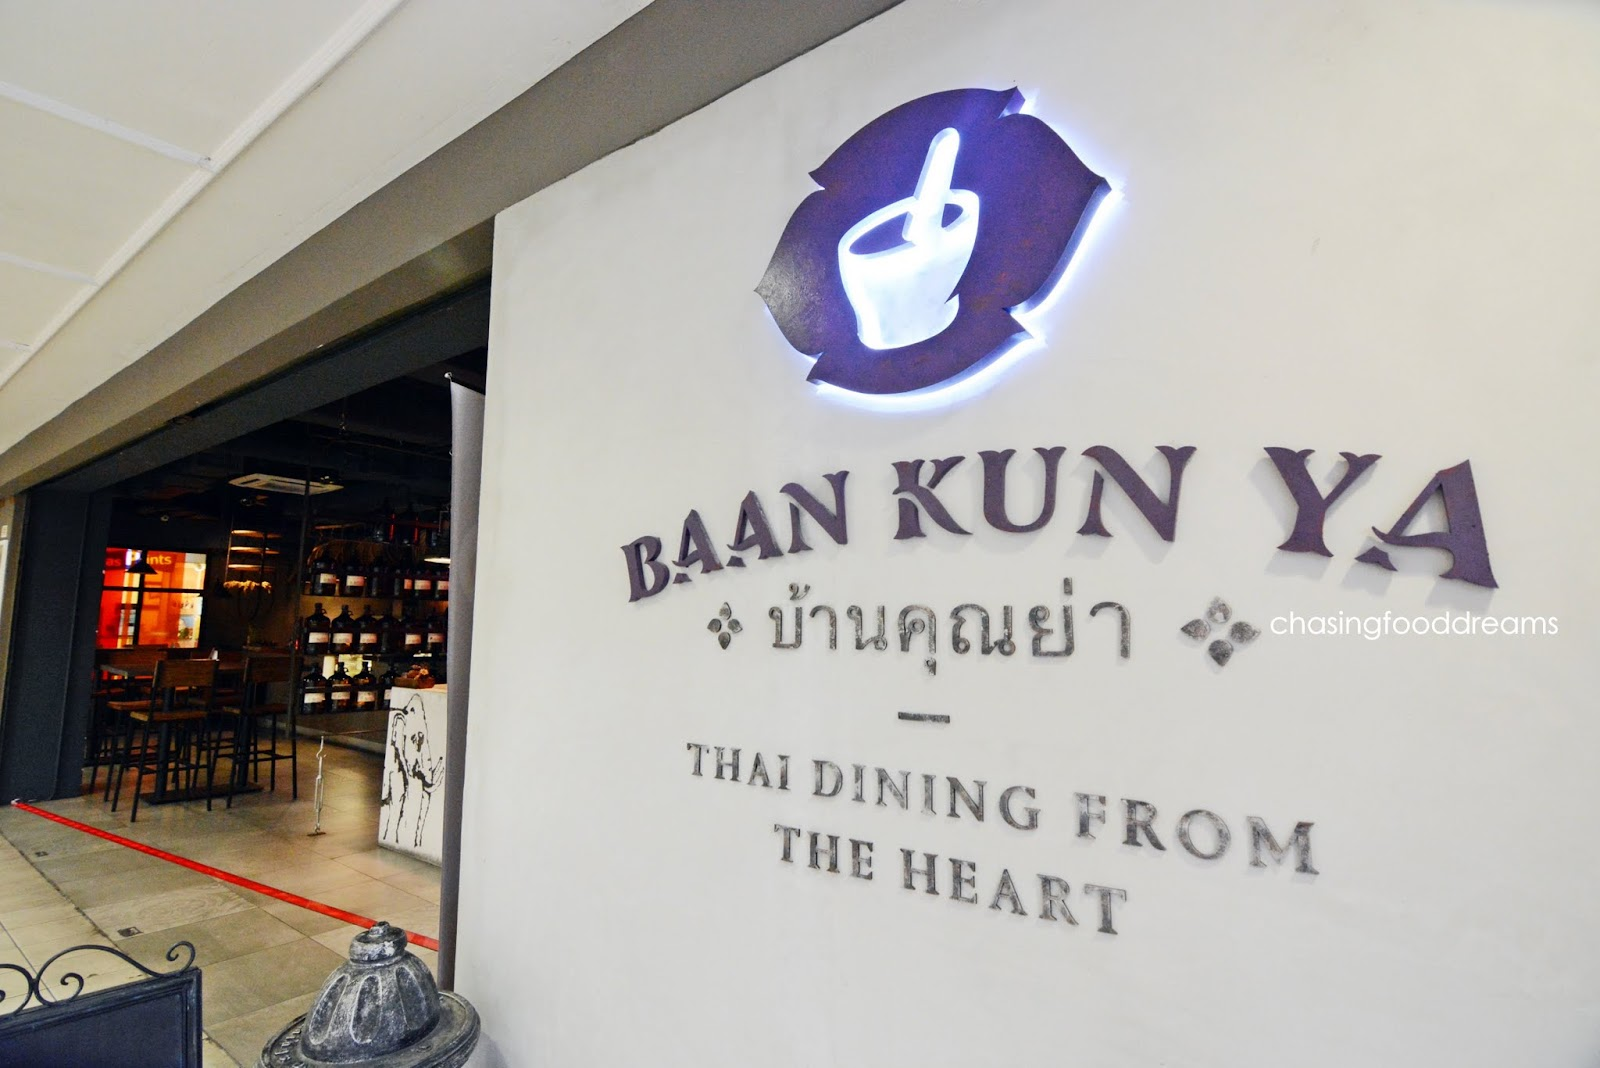 CHASING FOOD DREAMS: Baan Kun Ya Thai Restaurant @ Centerpoint ...